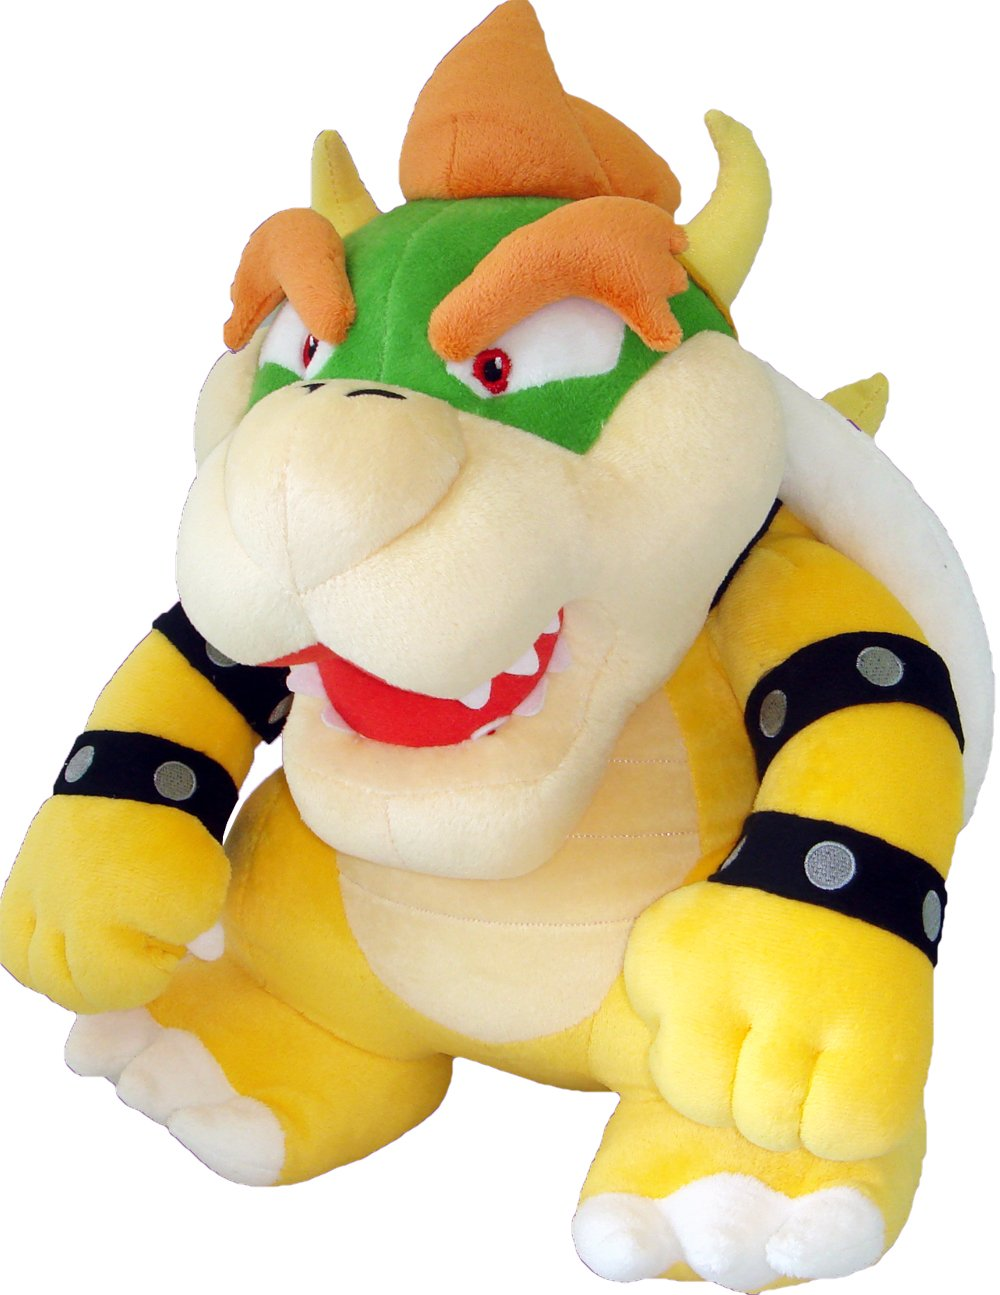 Super Mario Plush Series Plush Doll 15'' Deluxe Bowser Plush by Sanei